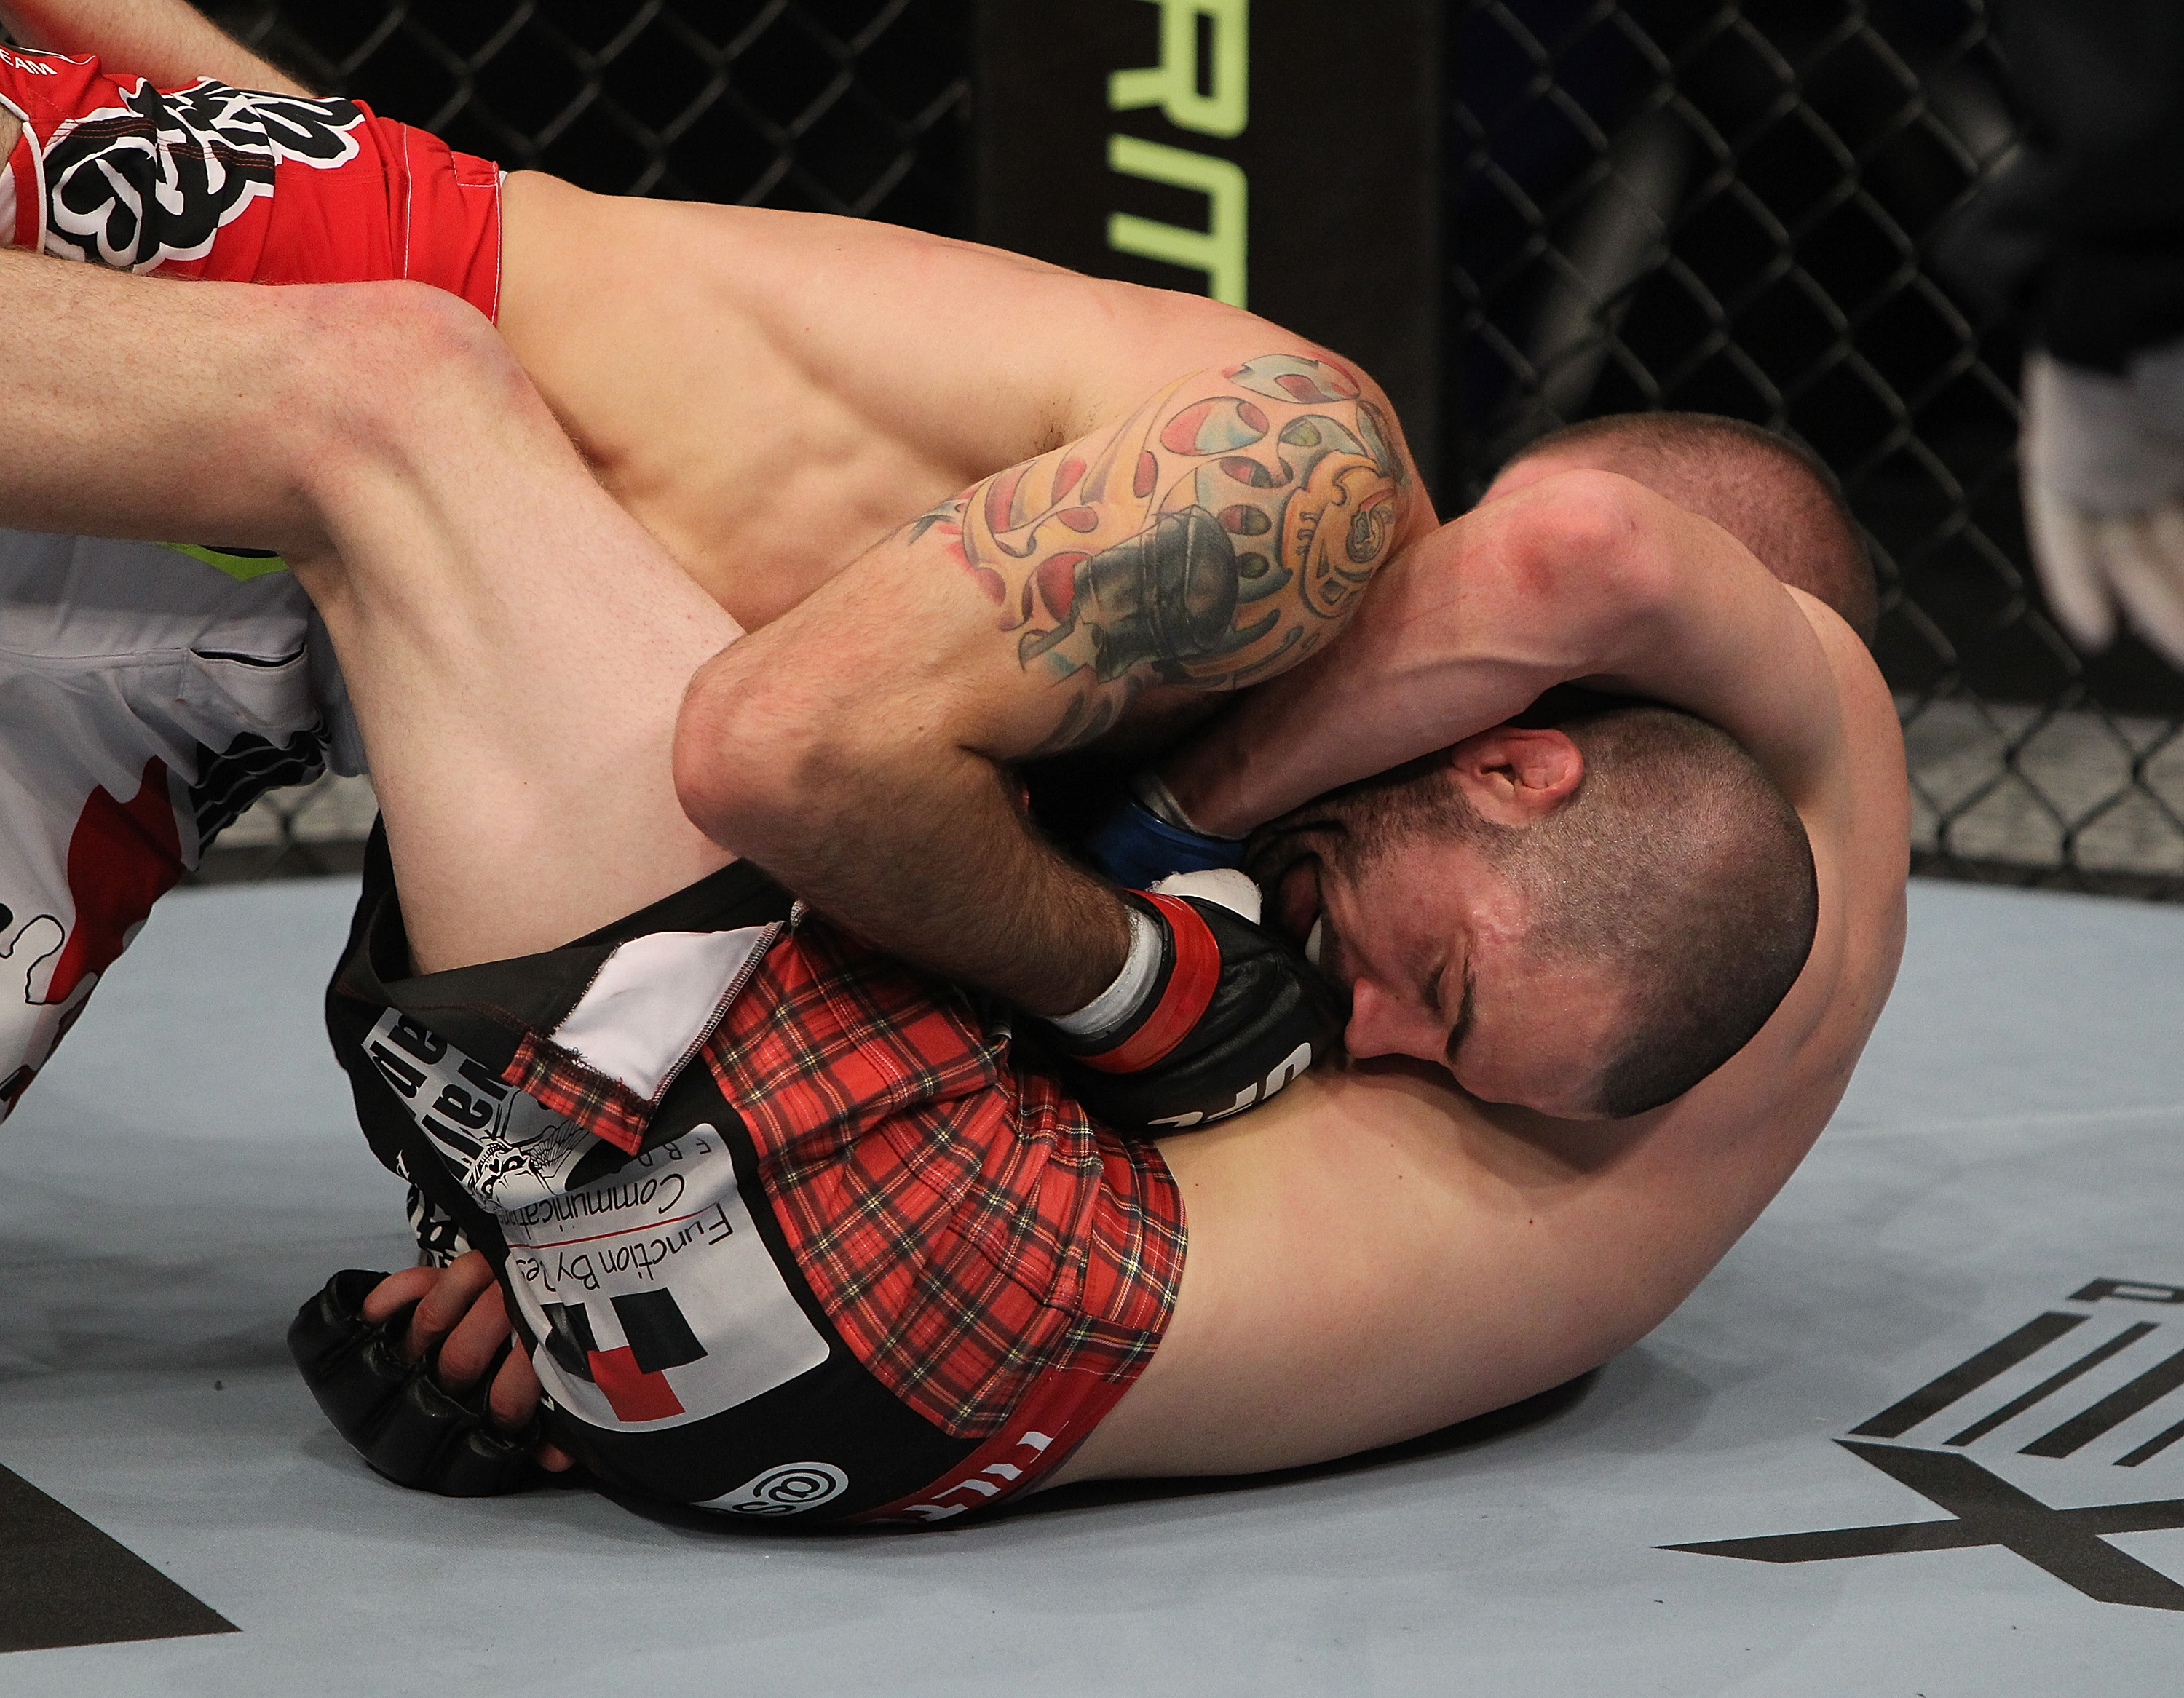 SAN JOSE, CA - NOVEMBER 19: Matt Brown (top) is held in a head-lock by Seth Baczynski (bottom) during an UFC Welterweight bout at the HP Pavillion in San Jose, California on November 19, 2011 in San Jose, California.  (Photo by Josh Hedges/Zuffa LLC/Zuffa LLC via Getty Images)